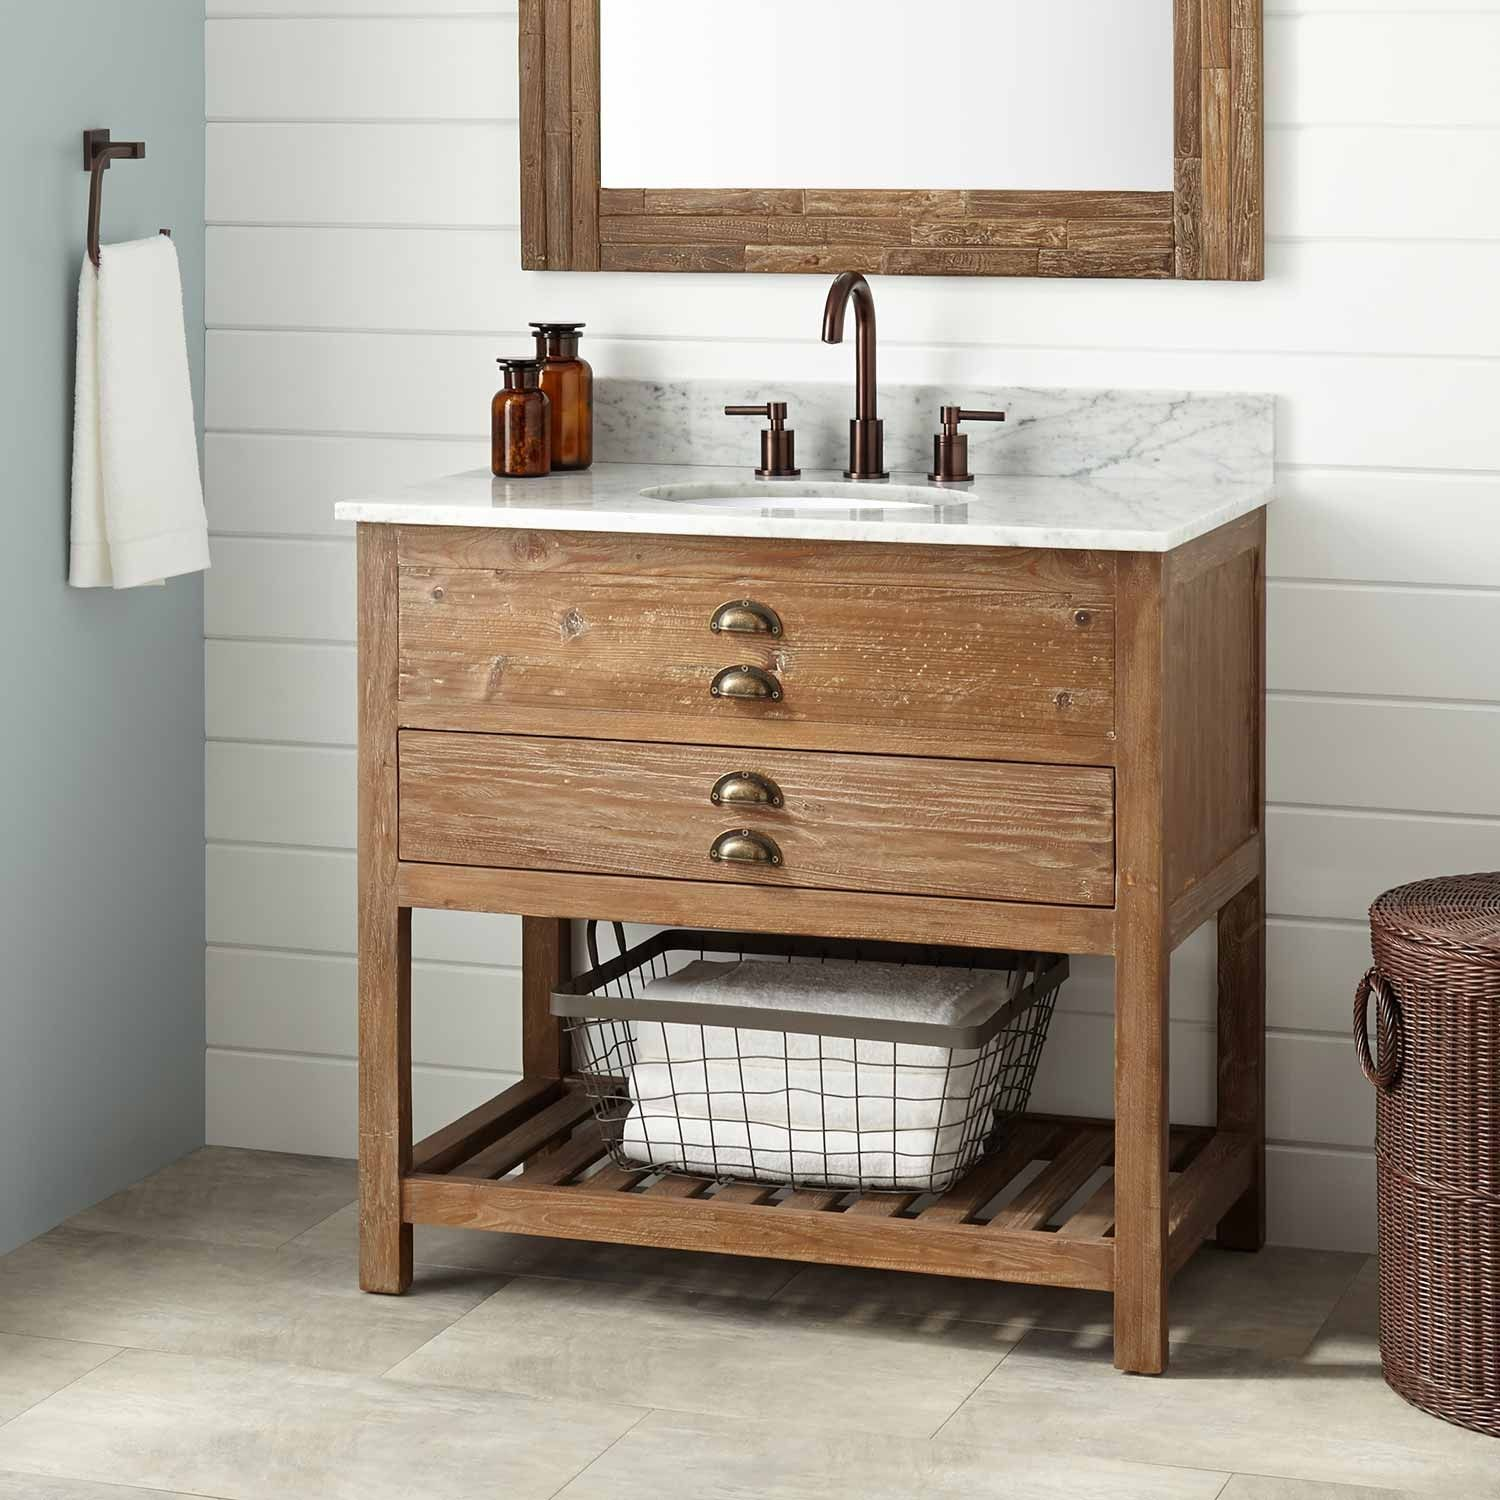 Wood Vanity Bathroom 36 Benoist Reclaimed Wood Vanity For Undermount Sink Pine